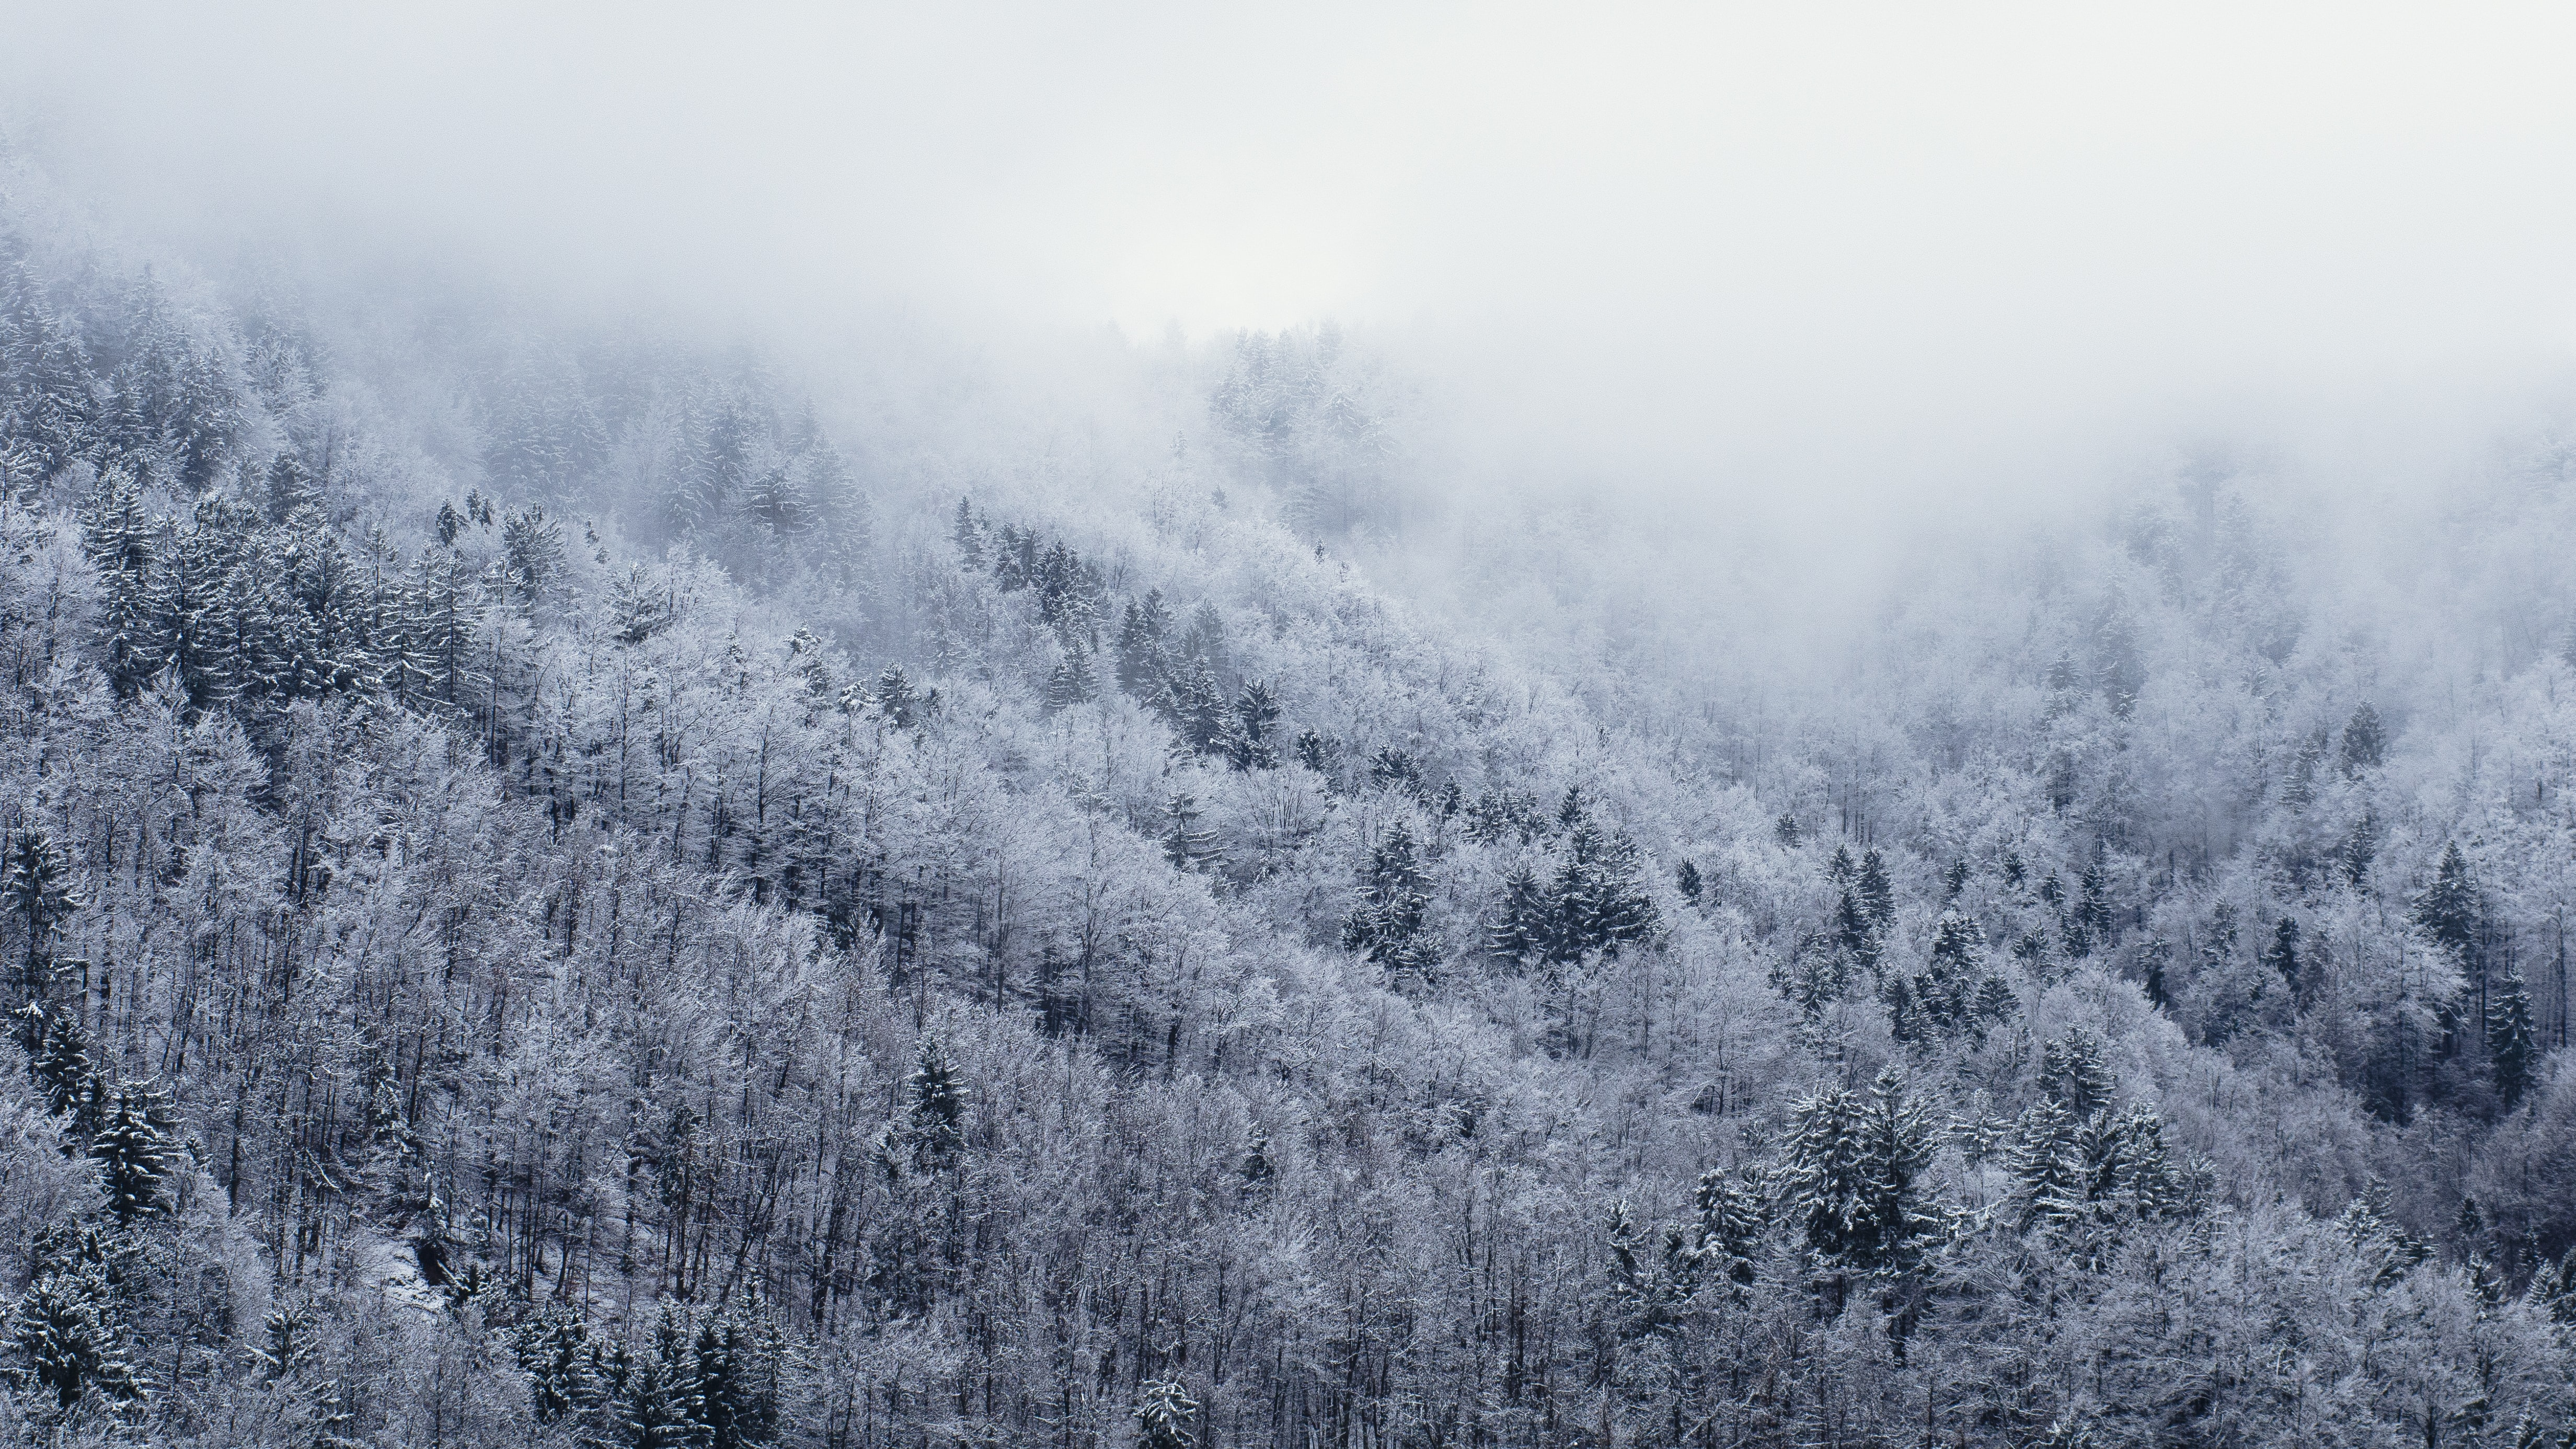 A forest landscape dusted with snow on a hill in the fog